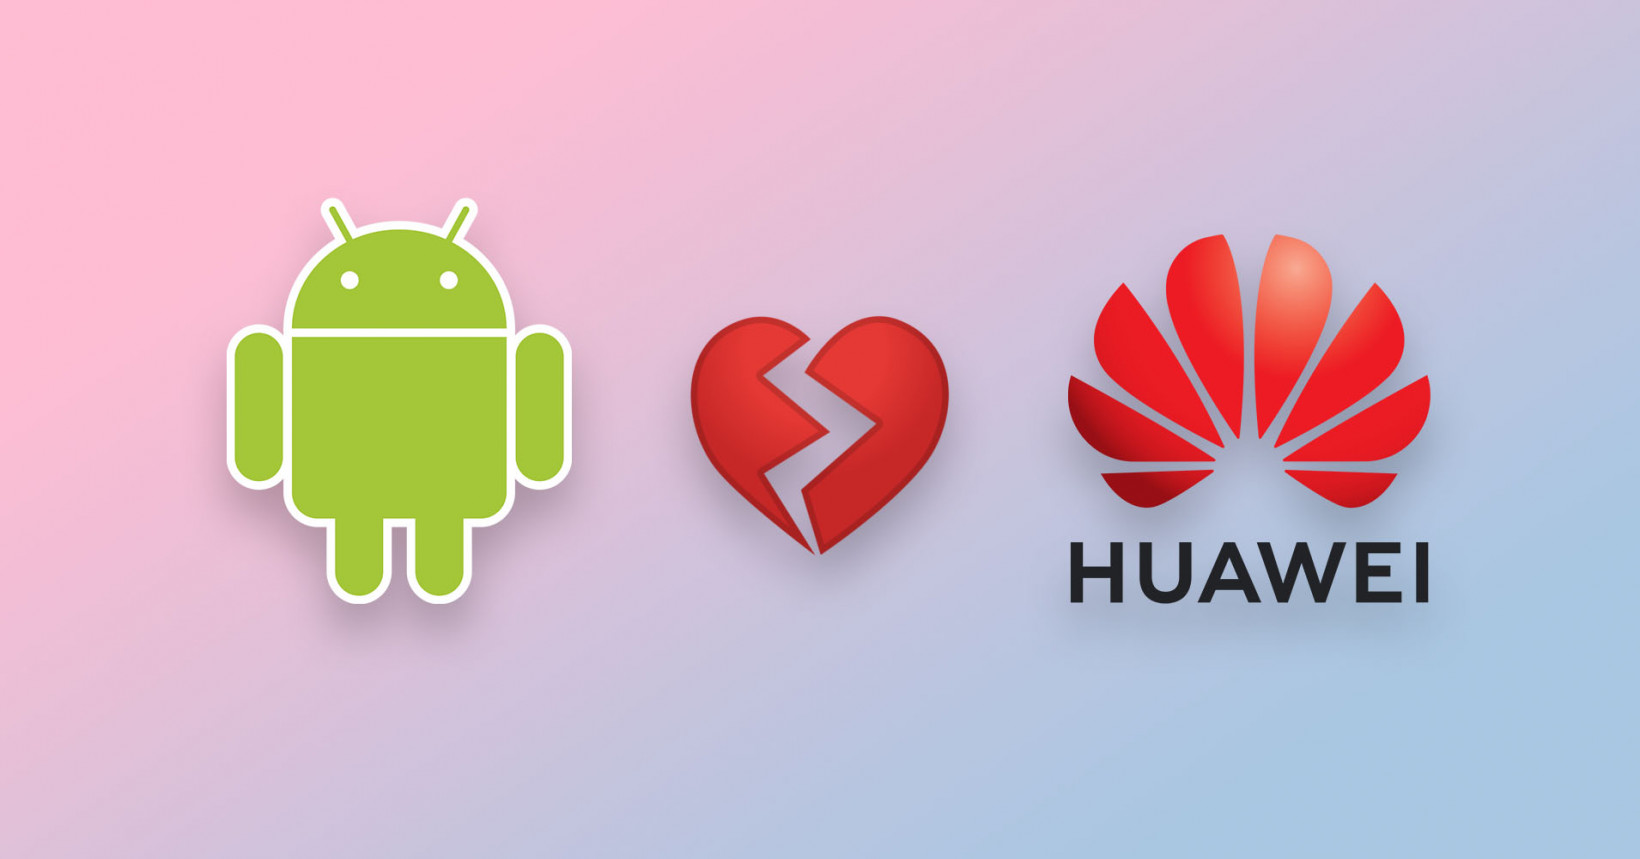 Android News on Flipboard | Huawei, Google Play, Google AI